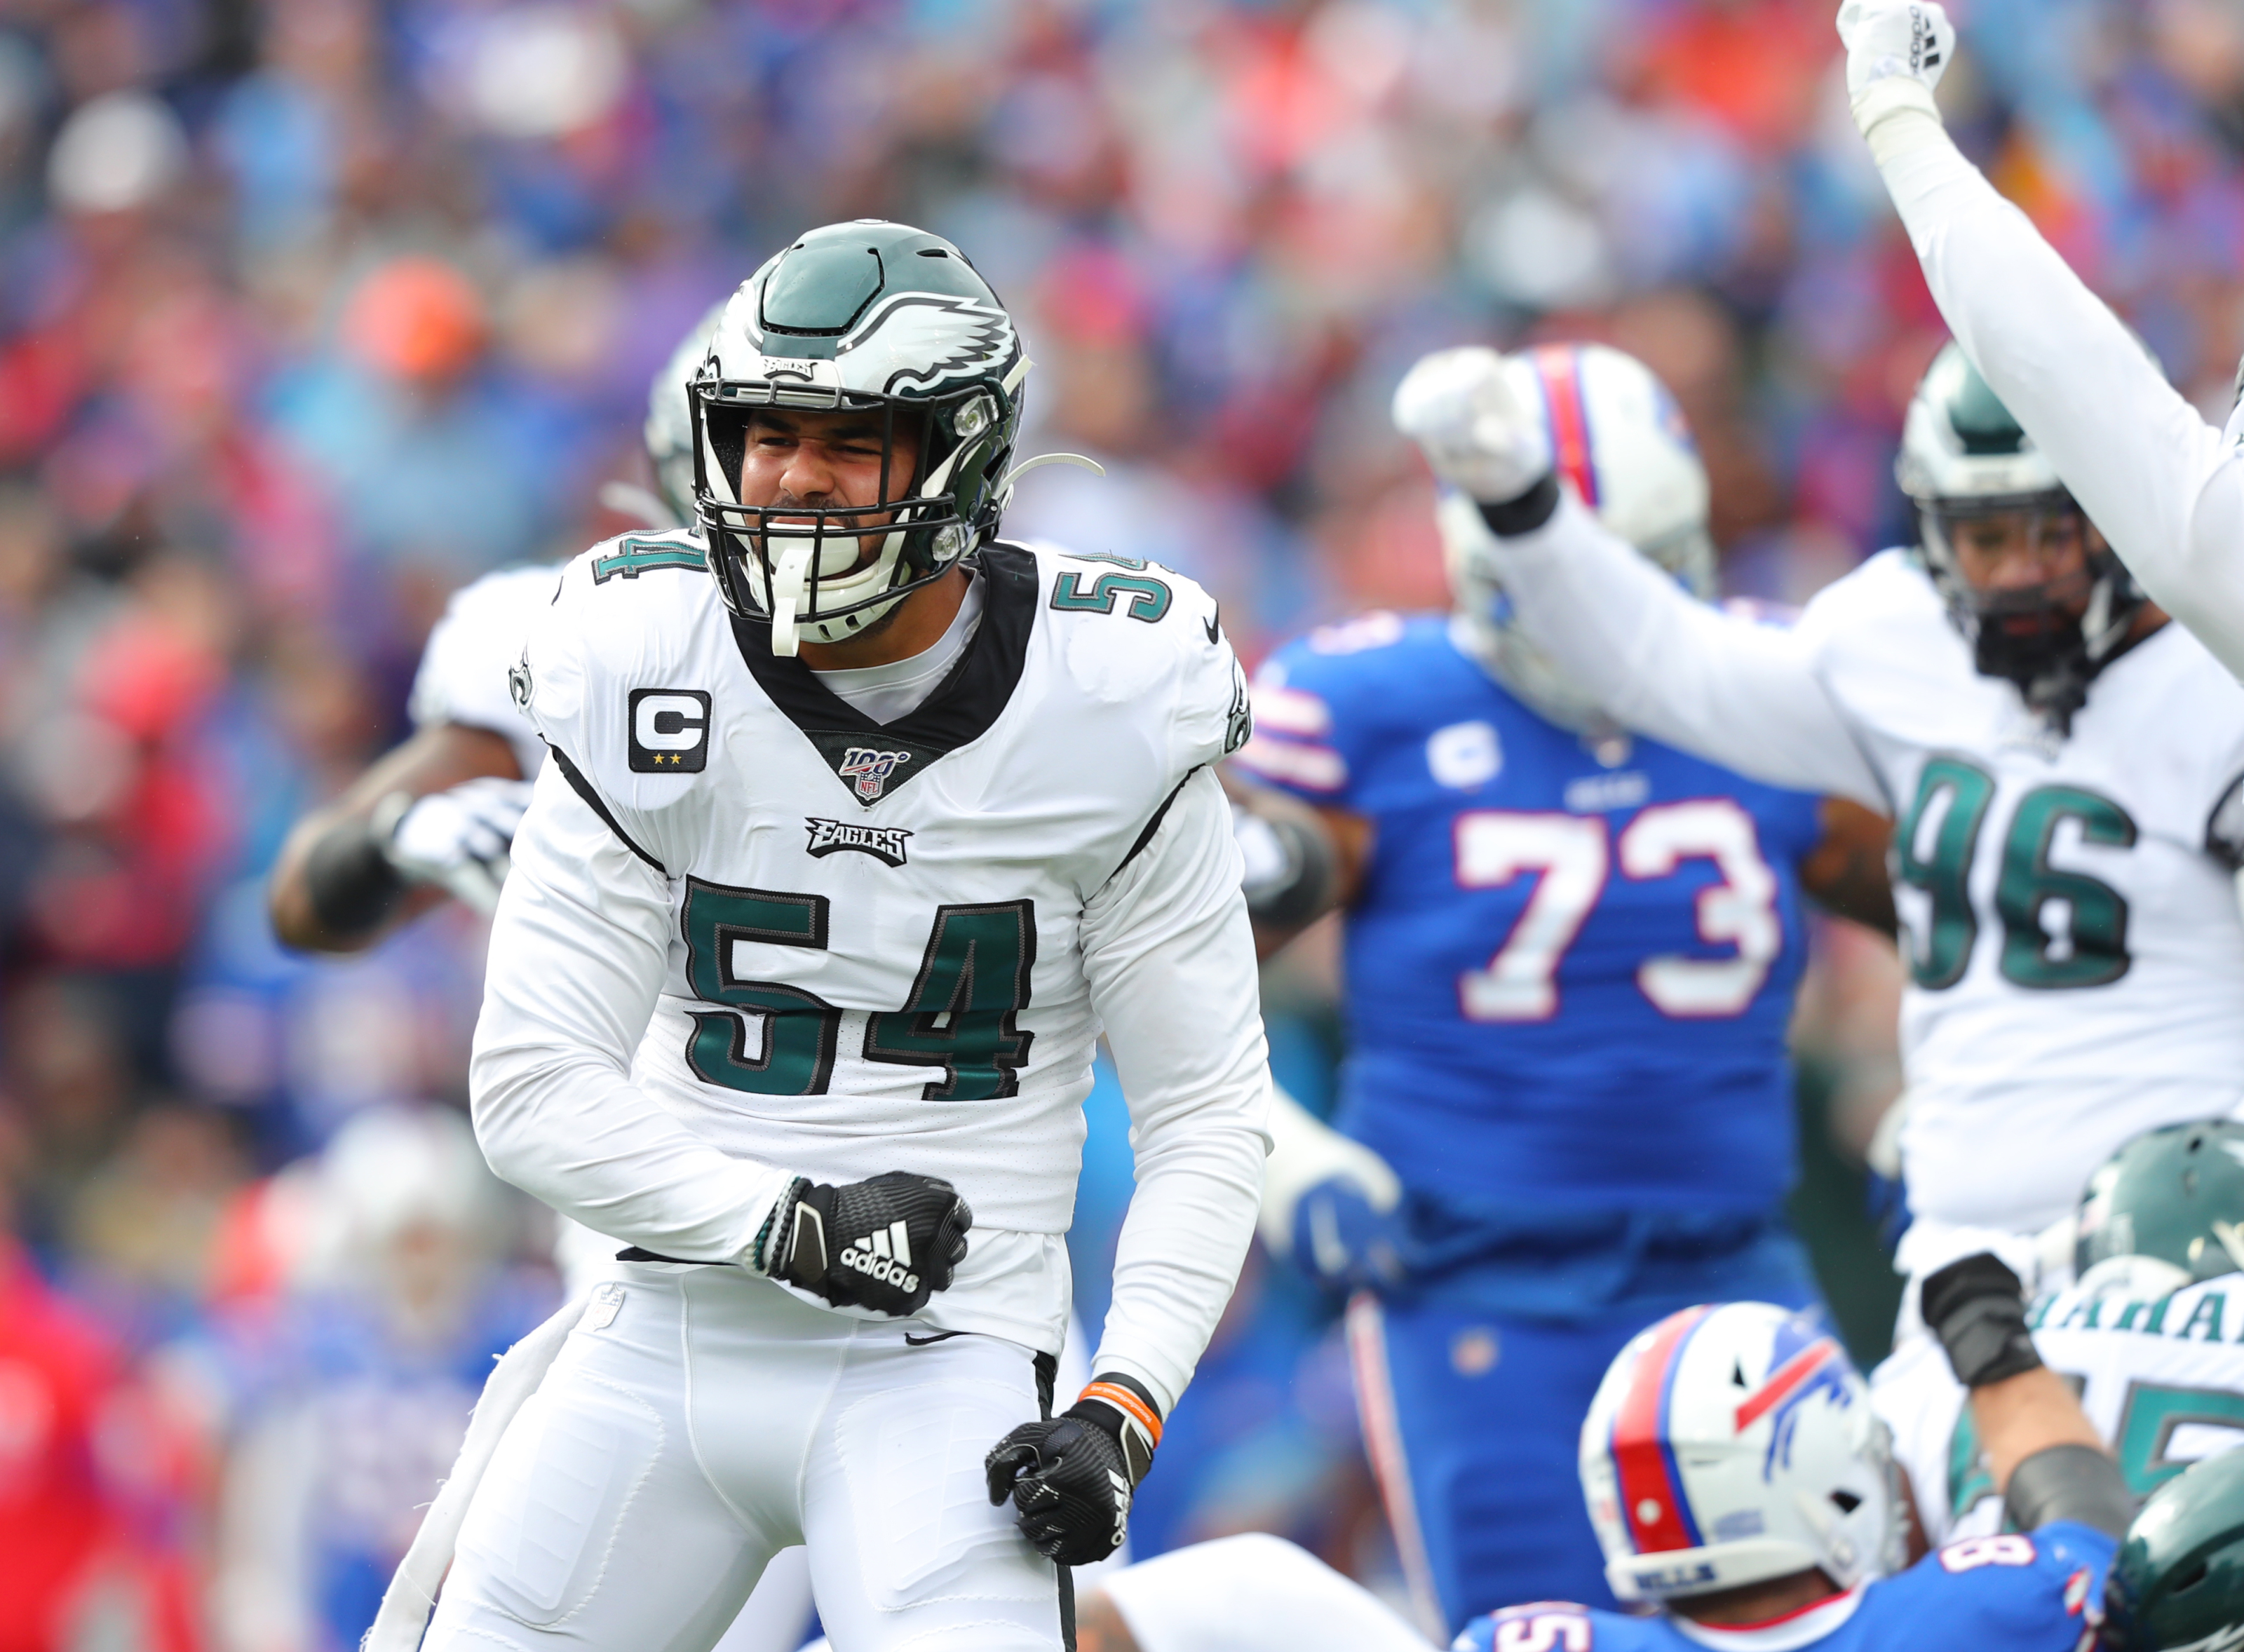 Injury Report Reveals Another Issue With Philadelphia Eagles Medical Staff